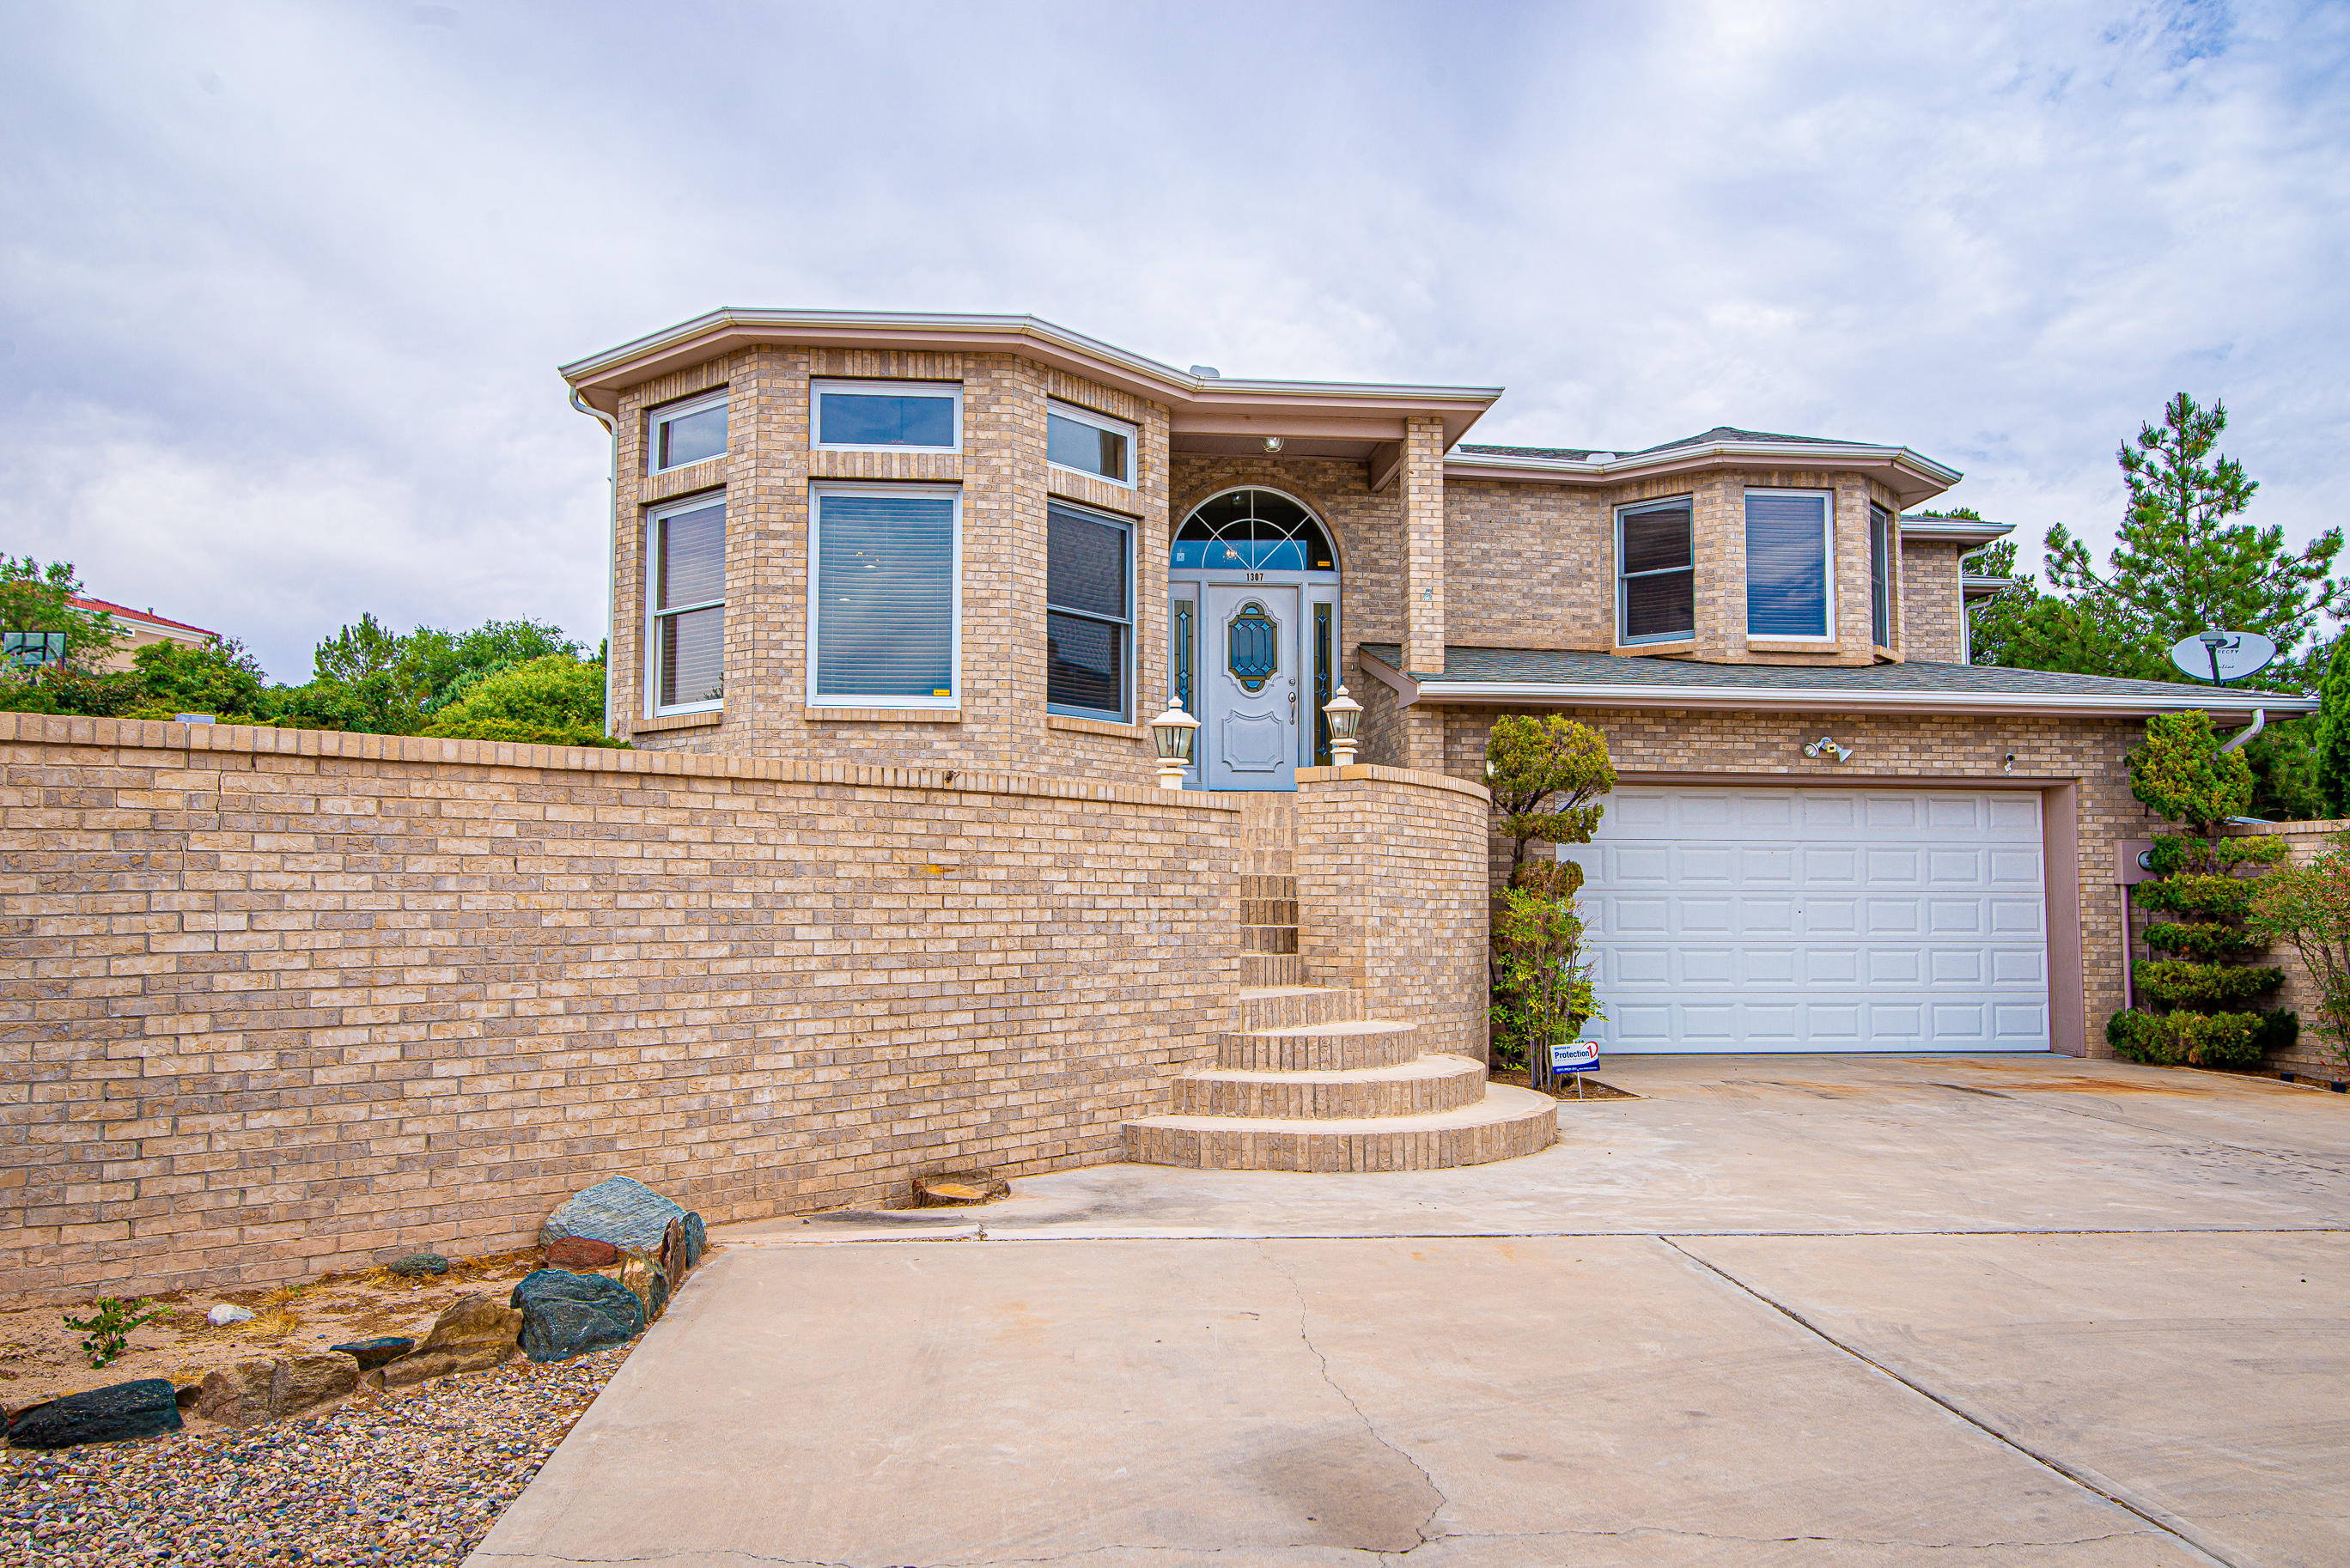 What a great chance to own this beautiful brick home in a desirable community! Views from this property of the Los Lunas valley are absolutely breathtaking. The space in this home is set up well with two separate living rooms and dining rooms. Outside you will find a large back deck with a built-in grill, fire pit area and a in-ground swimming pool -- perfect for entertaining! Other great features include a large master suite, updated bathrooms, new carpet, built-in security cameras, central vacuum system,  extra storage/crawl space and bathroom in the garage! Call to schedule your showing today!